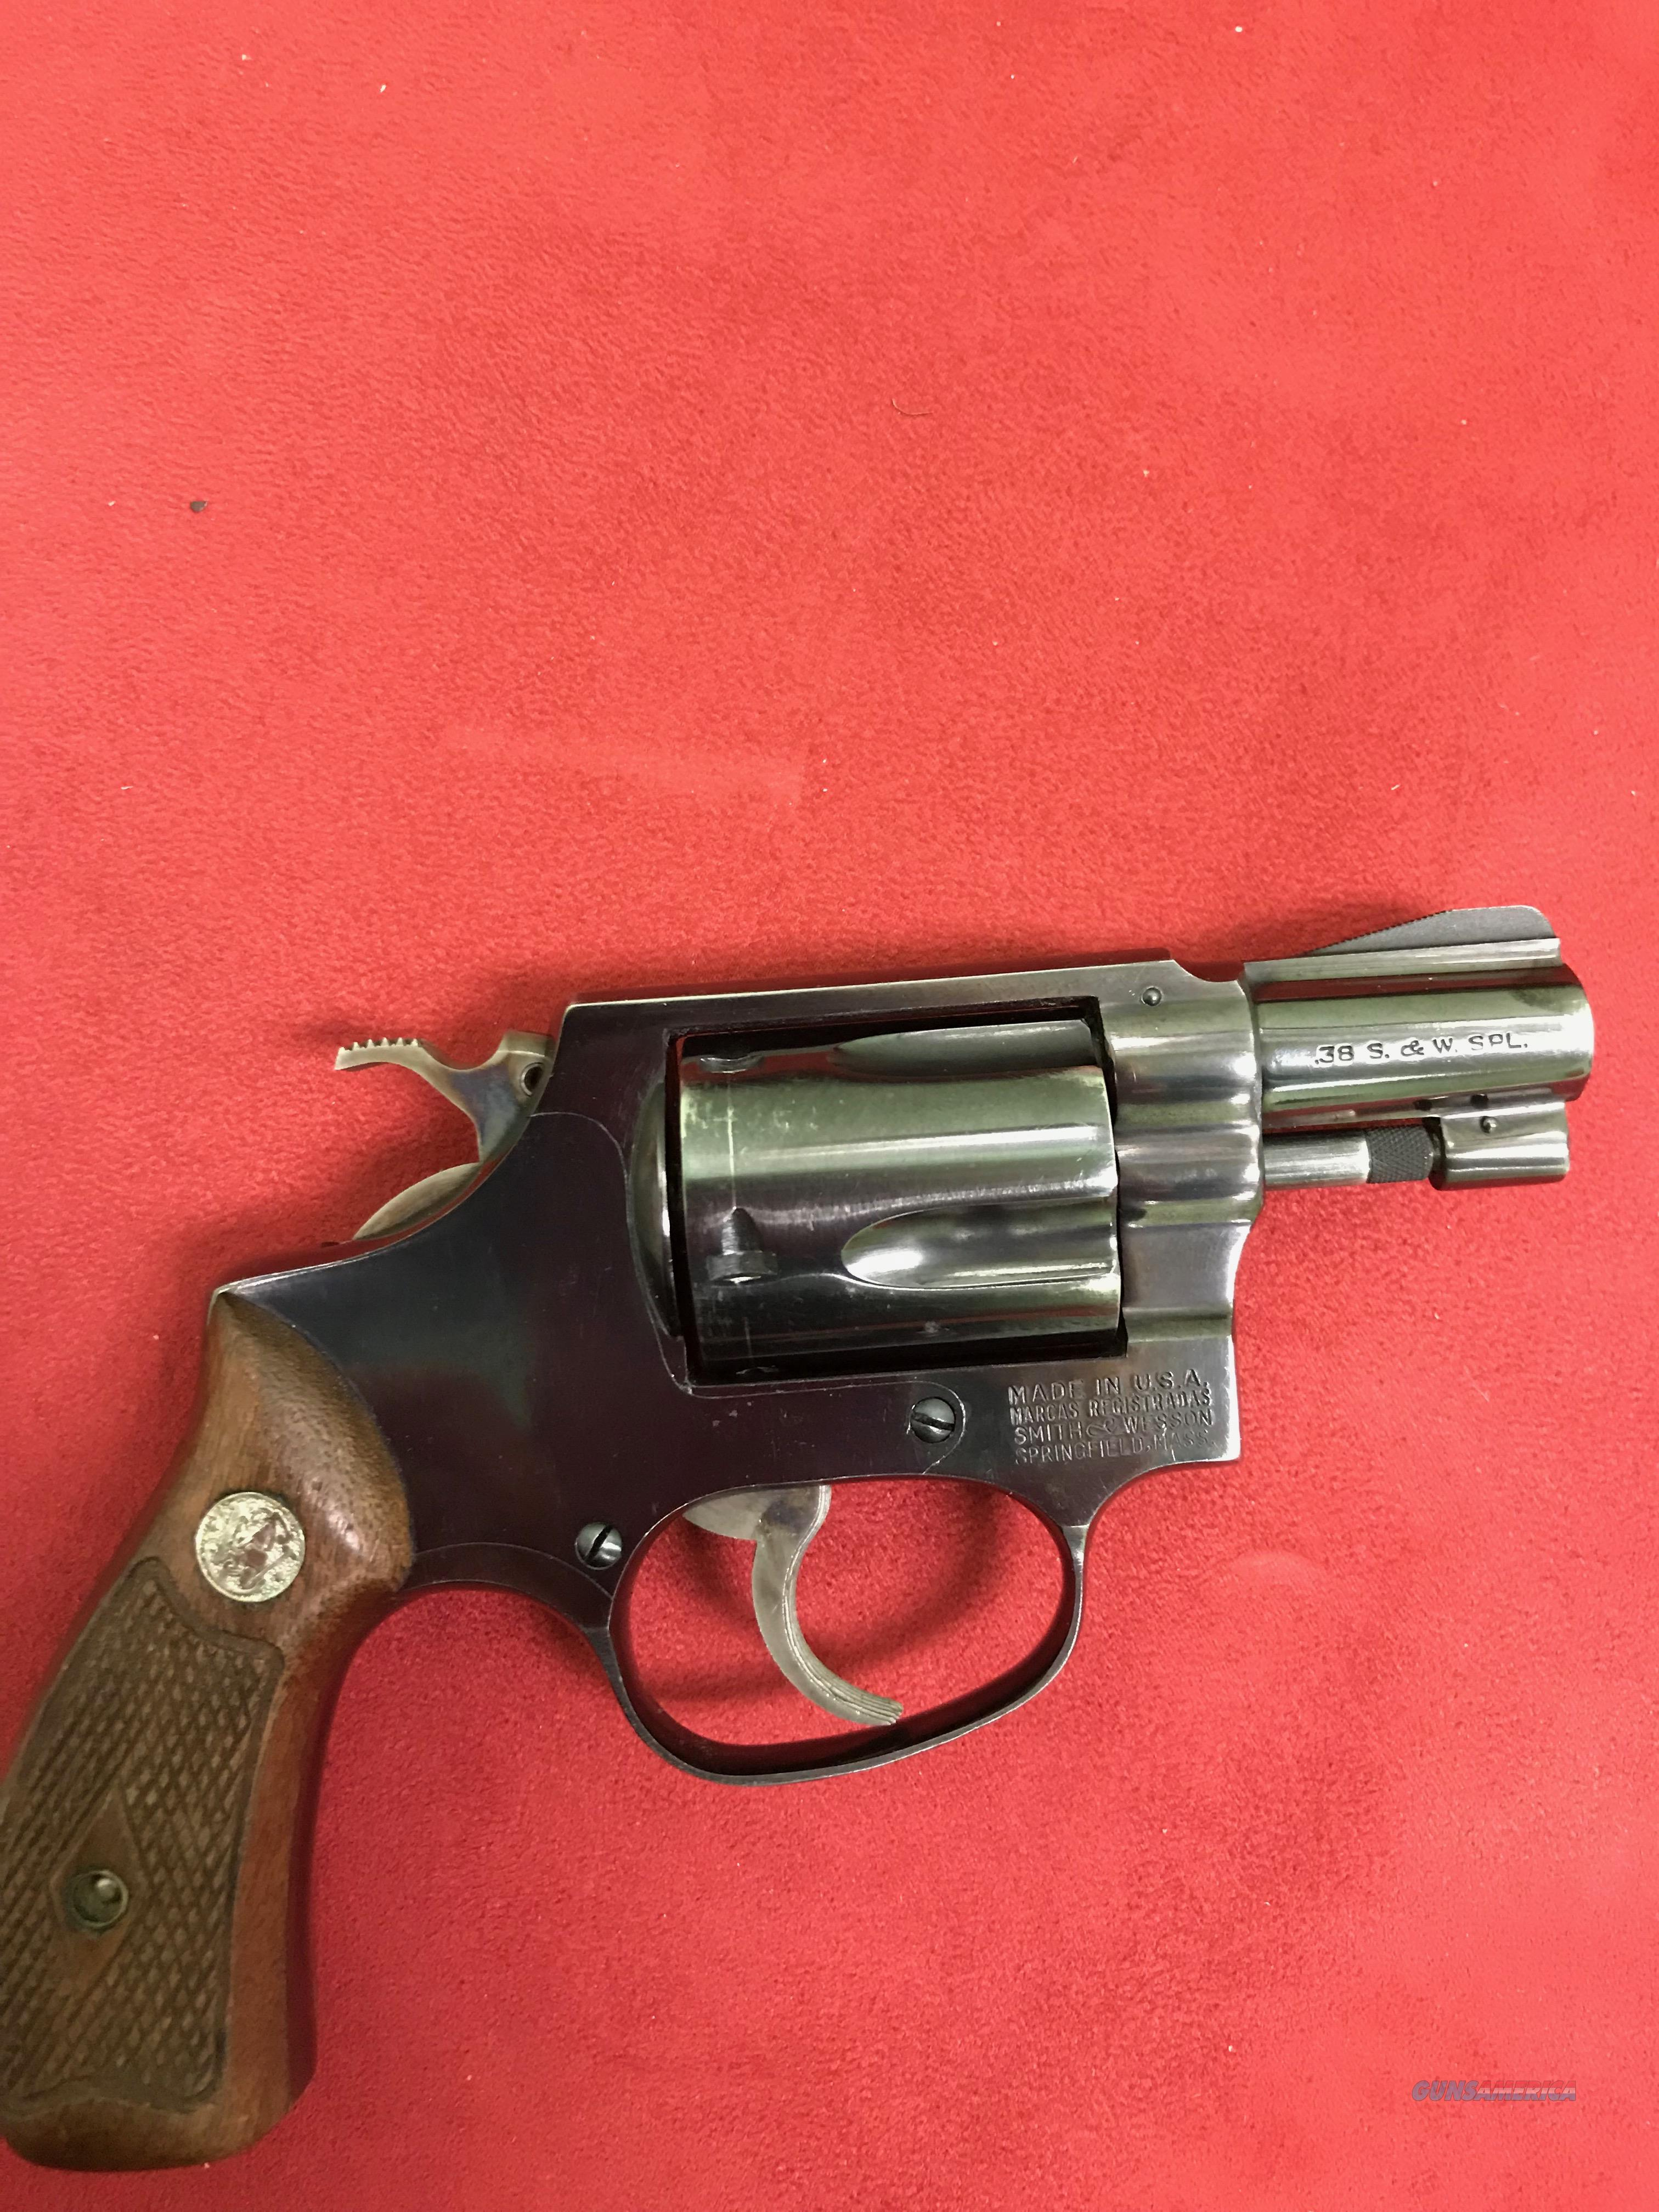 Smith & Wesson Model 36 38 spl  Guns > Pistols > Smith & Wesson Revolvers > Small Frame ( J )